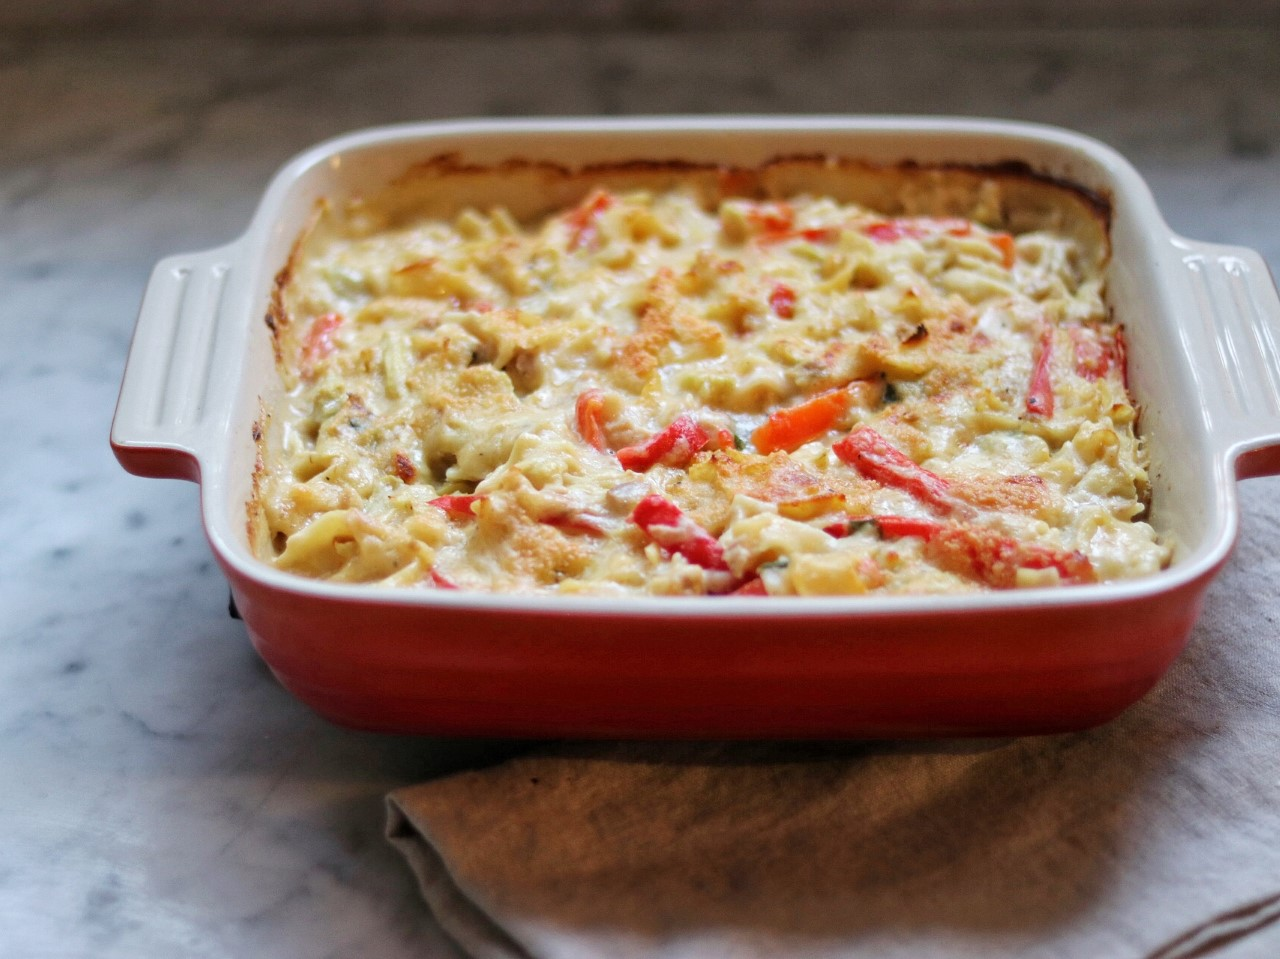 freezer meals for after baby: Mediterranean Tuna Noodle Casserole